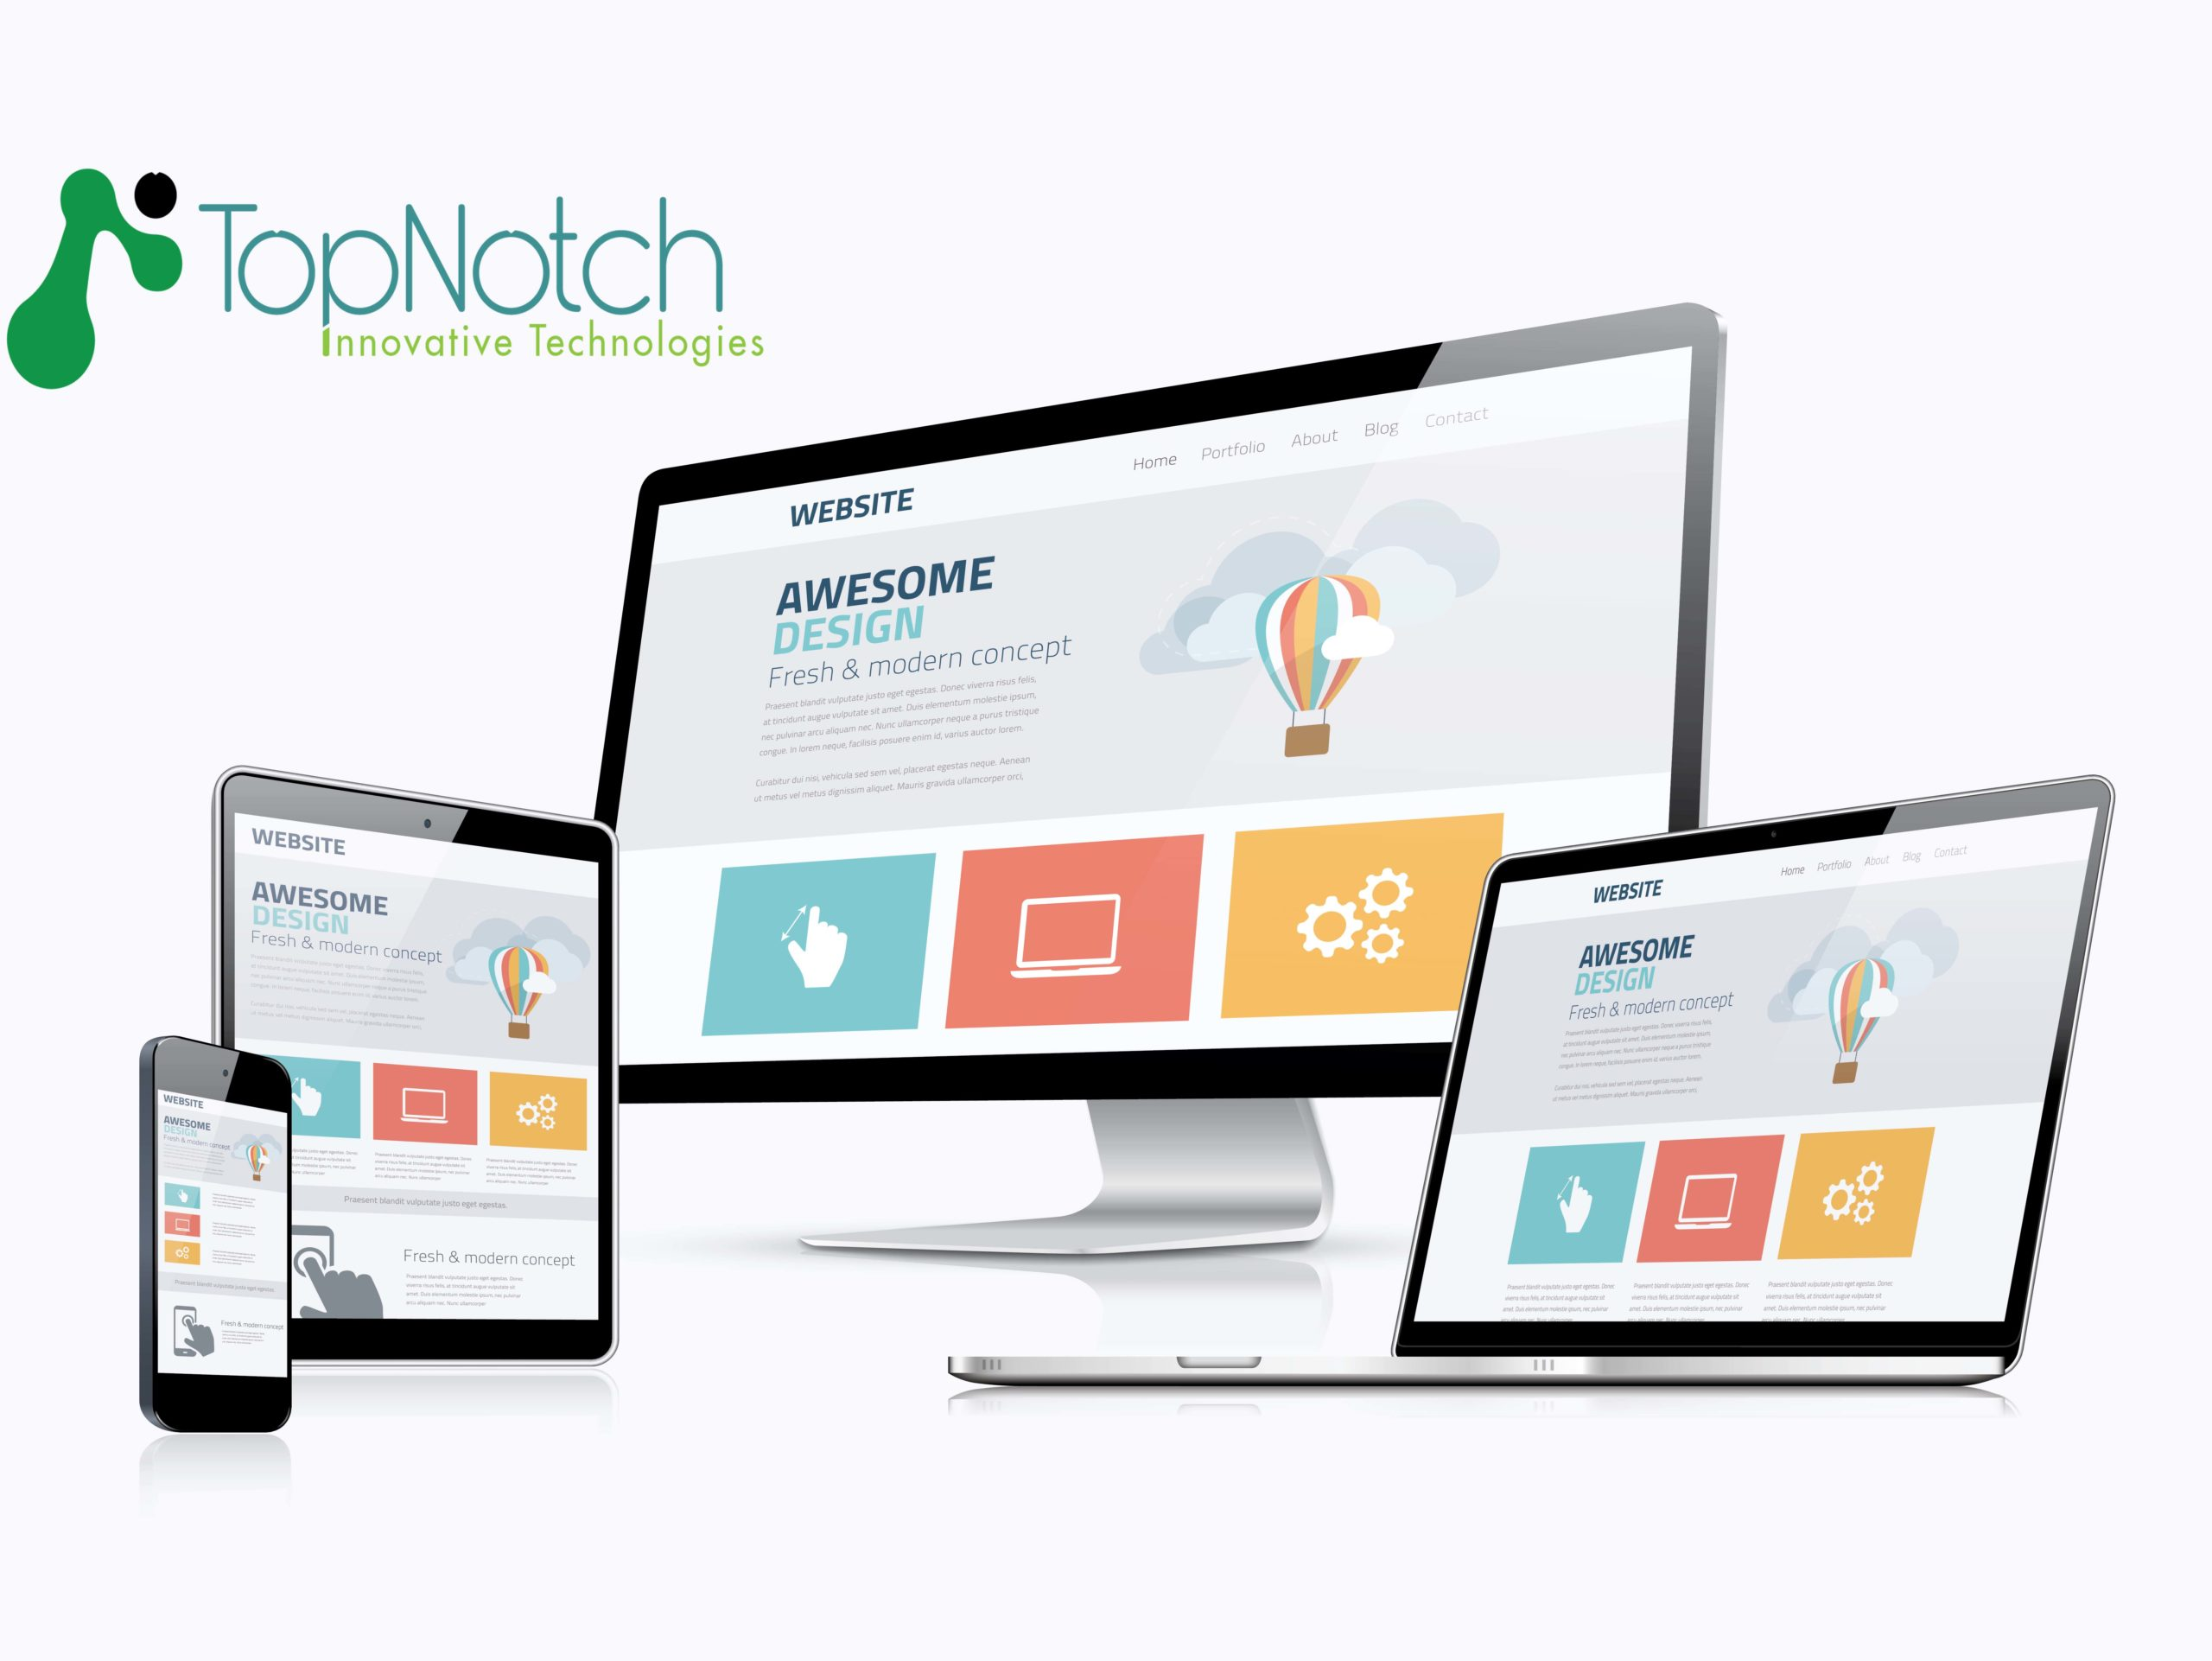 6 Key Reasons to Redesign Your Website